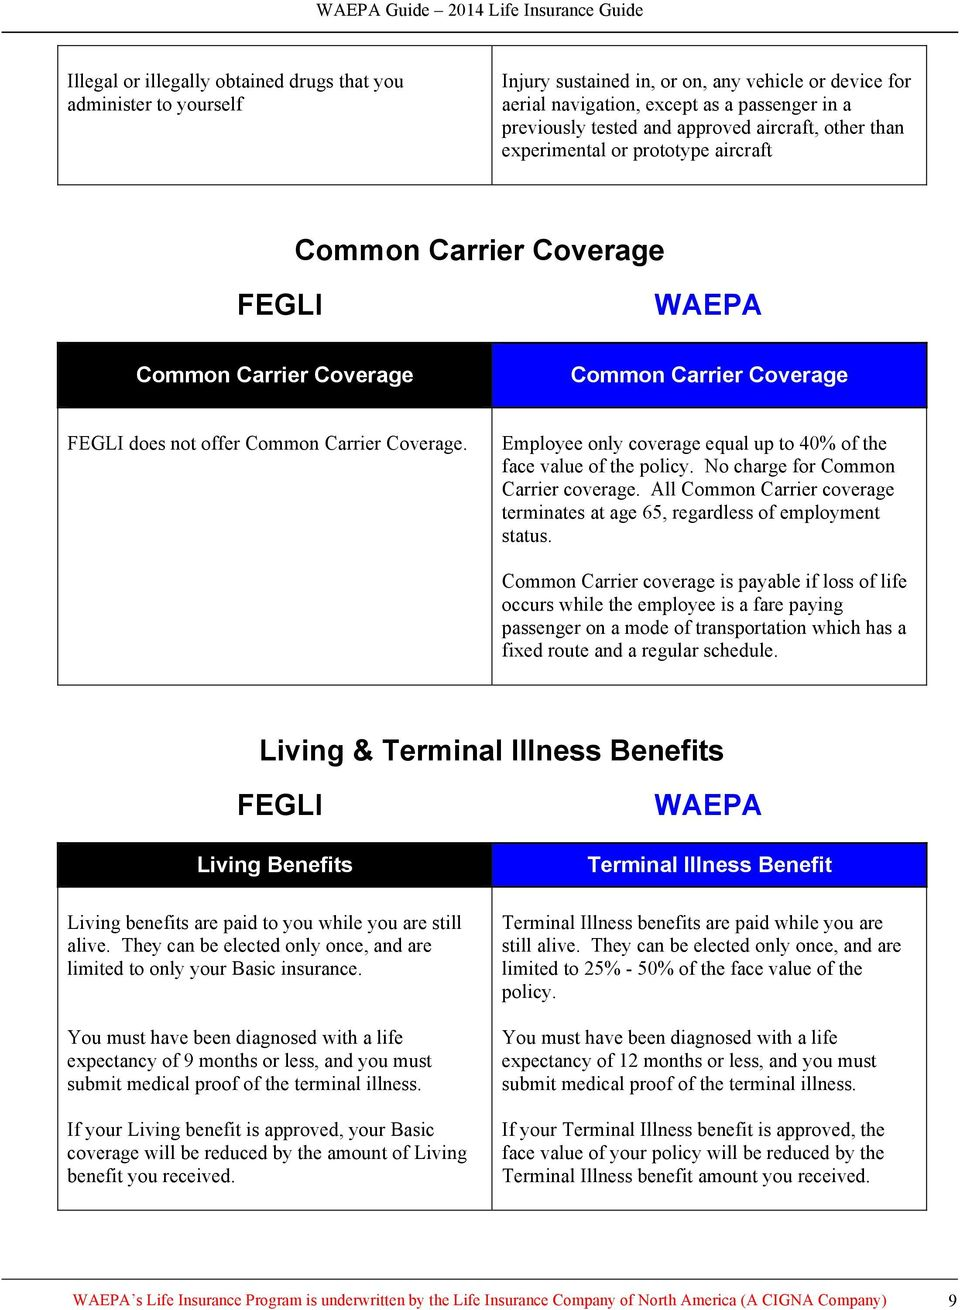 Employee only coverage equal up to 40% of the face value of the policy. No charge for Common Carrier coverage. All Common Carrier coverage terminates at age 65, regardless of employment status.